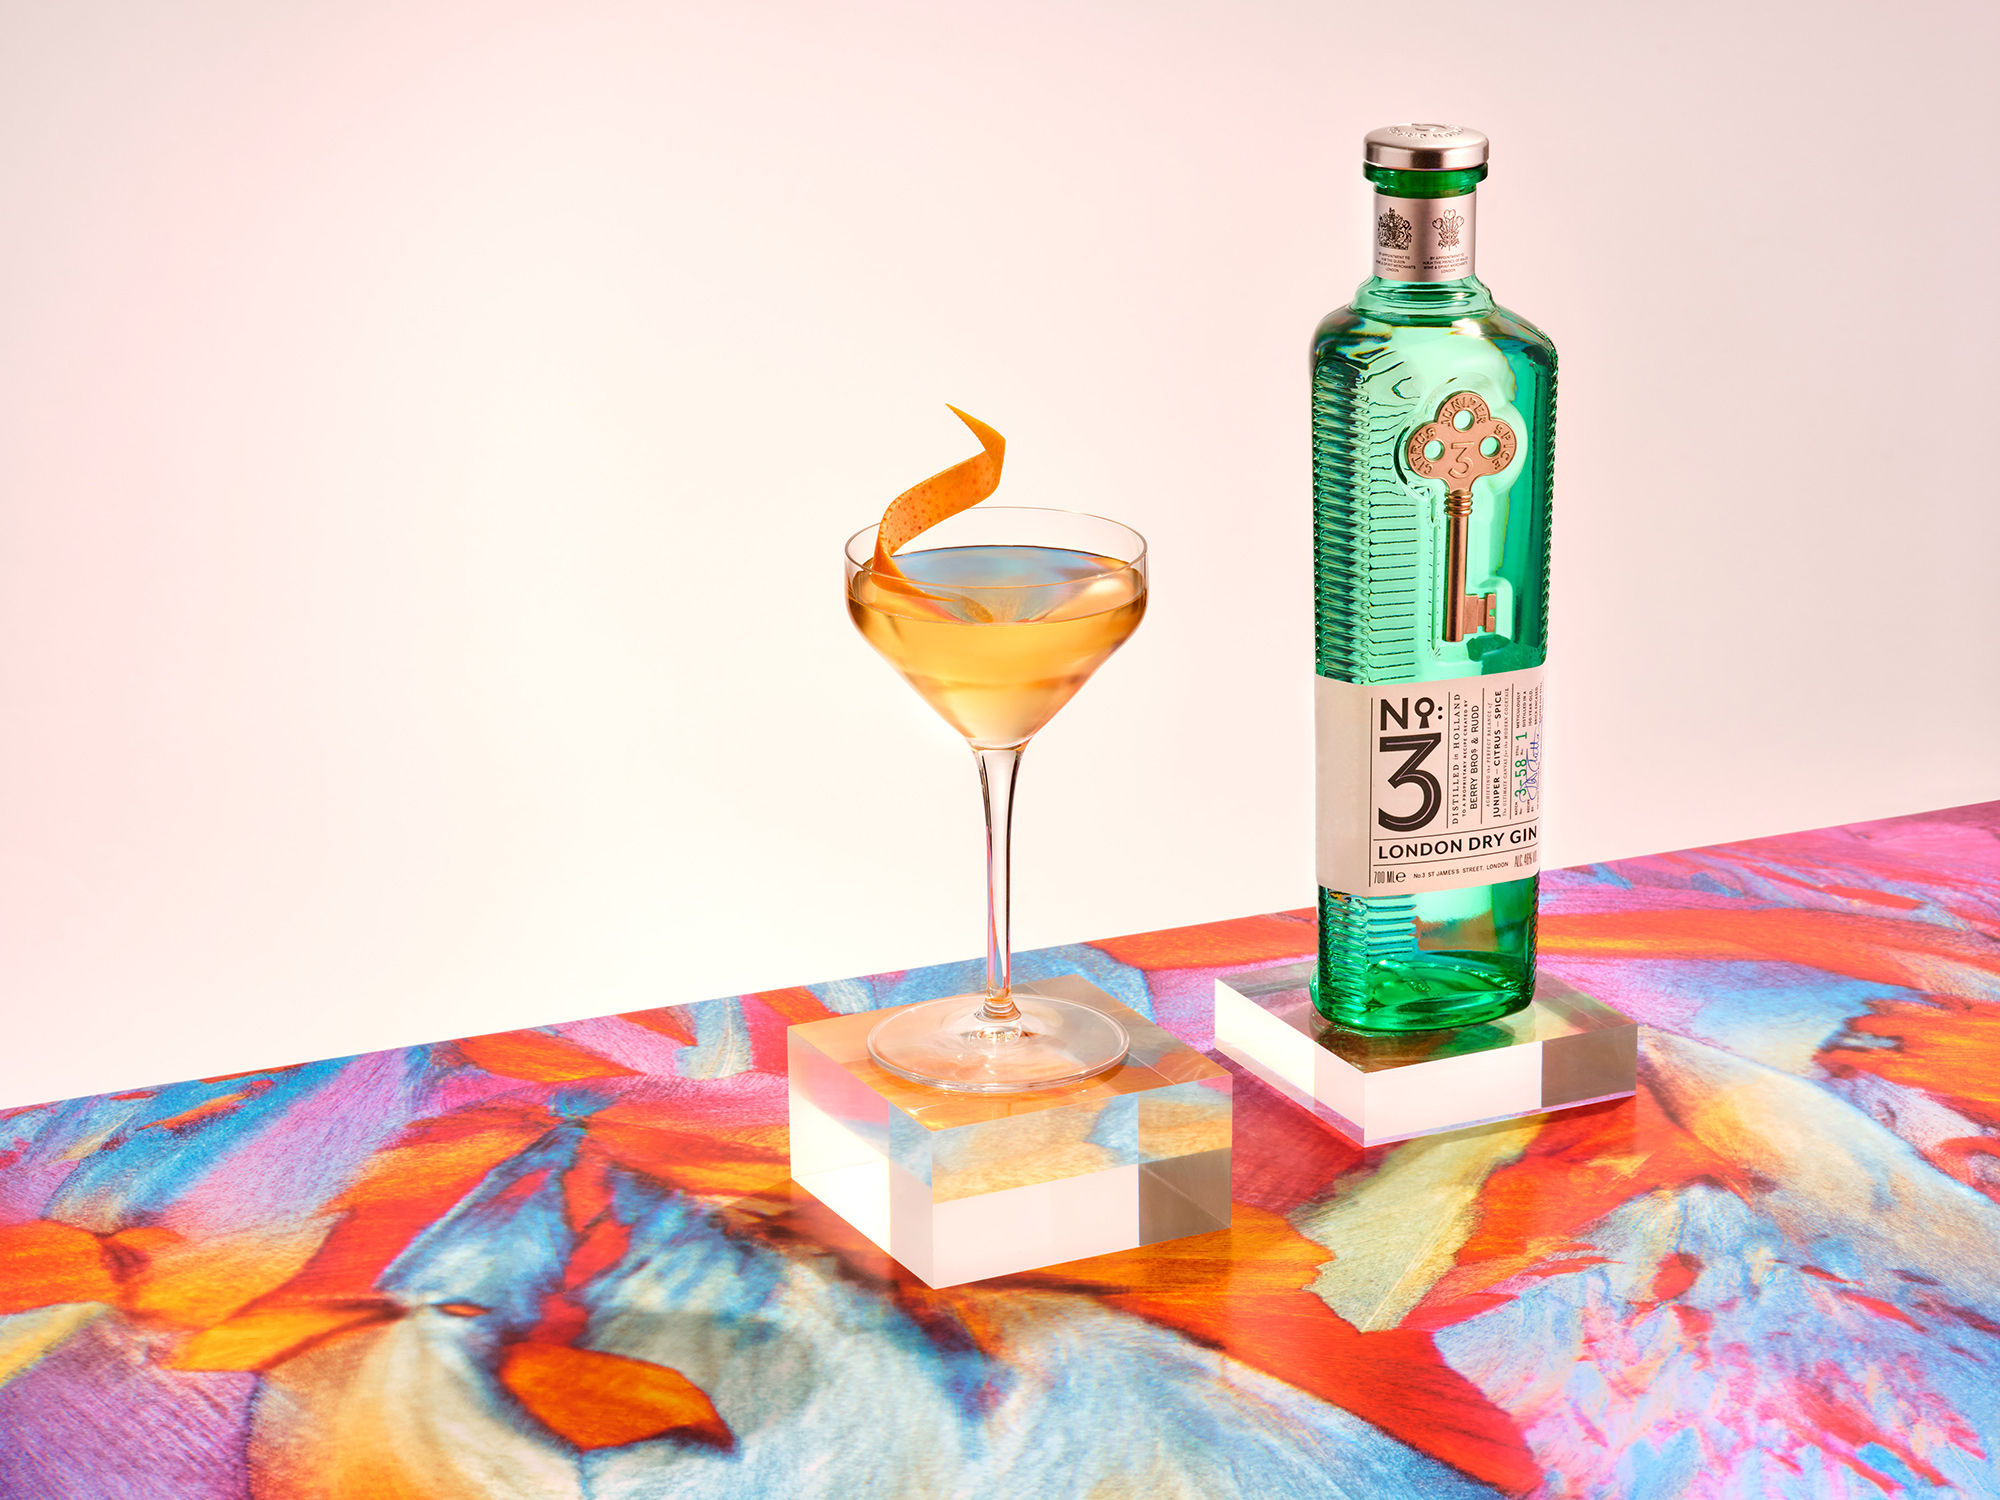 Justin Zoll has also photographed No3 cocktails at 40x magnification